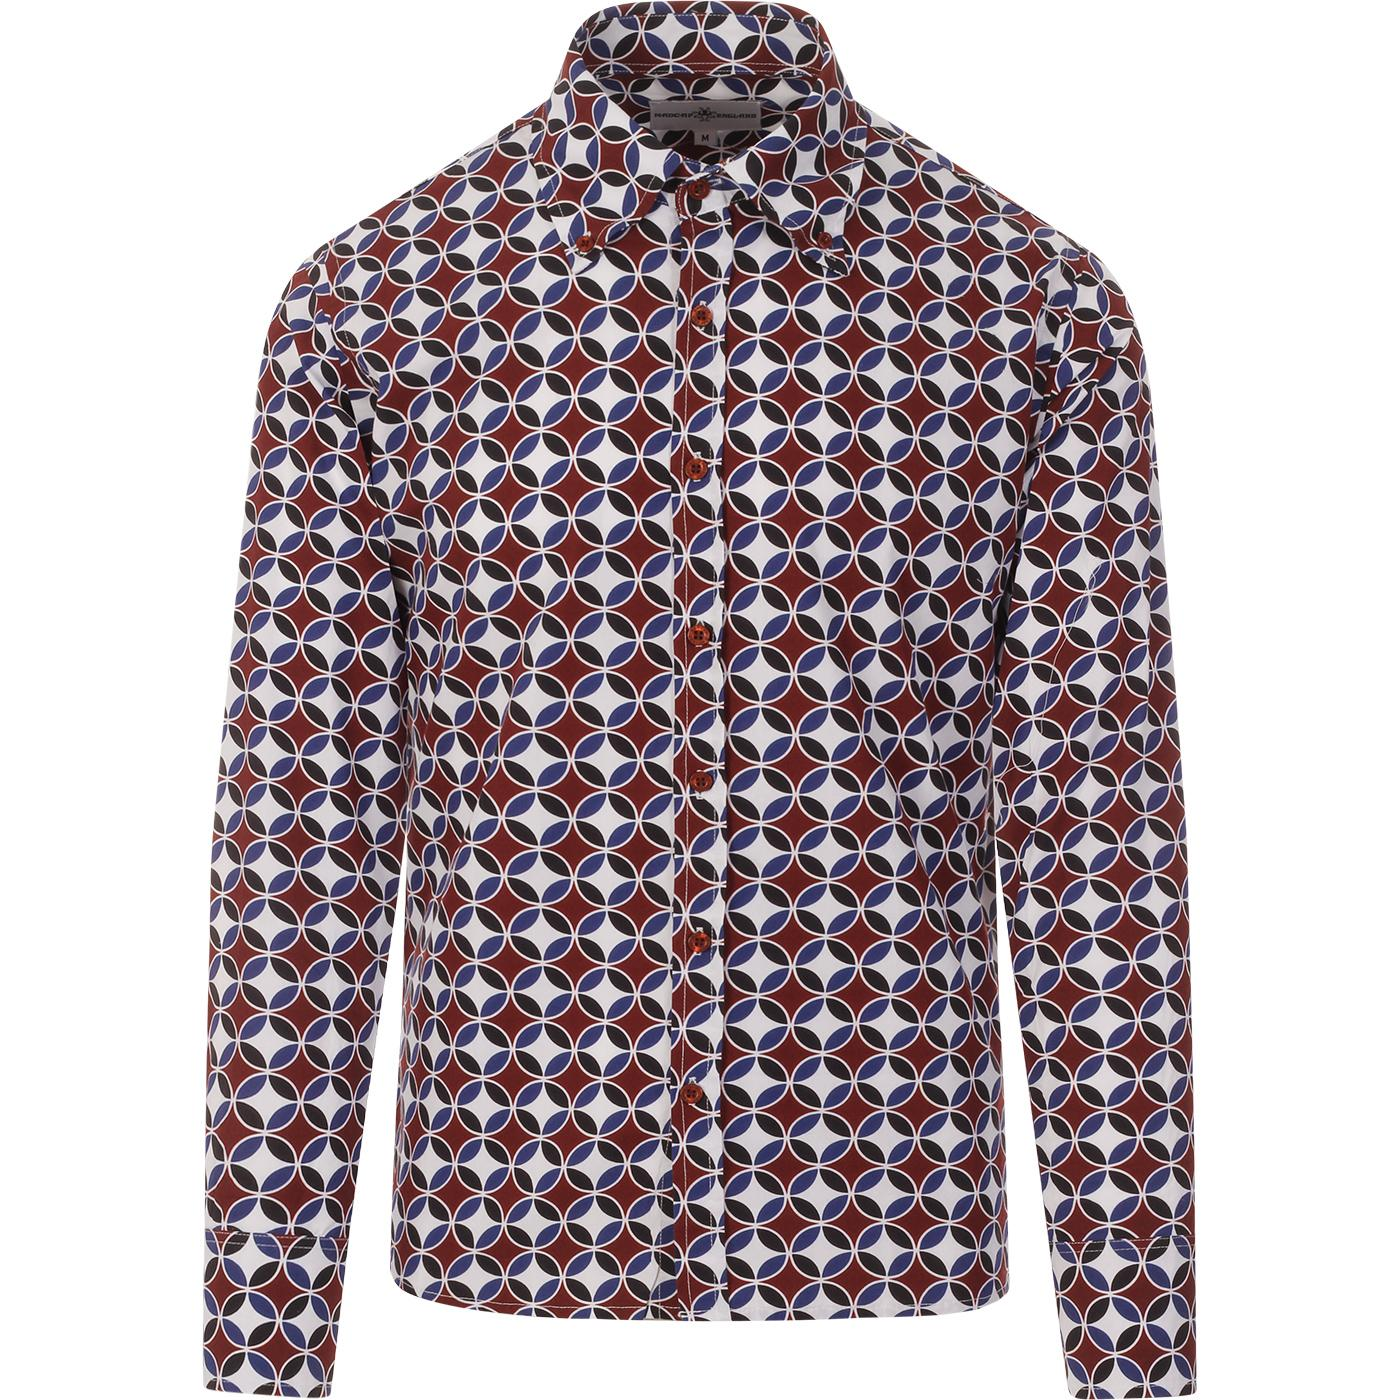 Trip 2nd Sunset MADCAP England 60s Circles Shirt